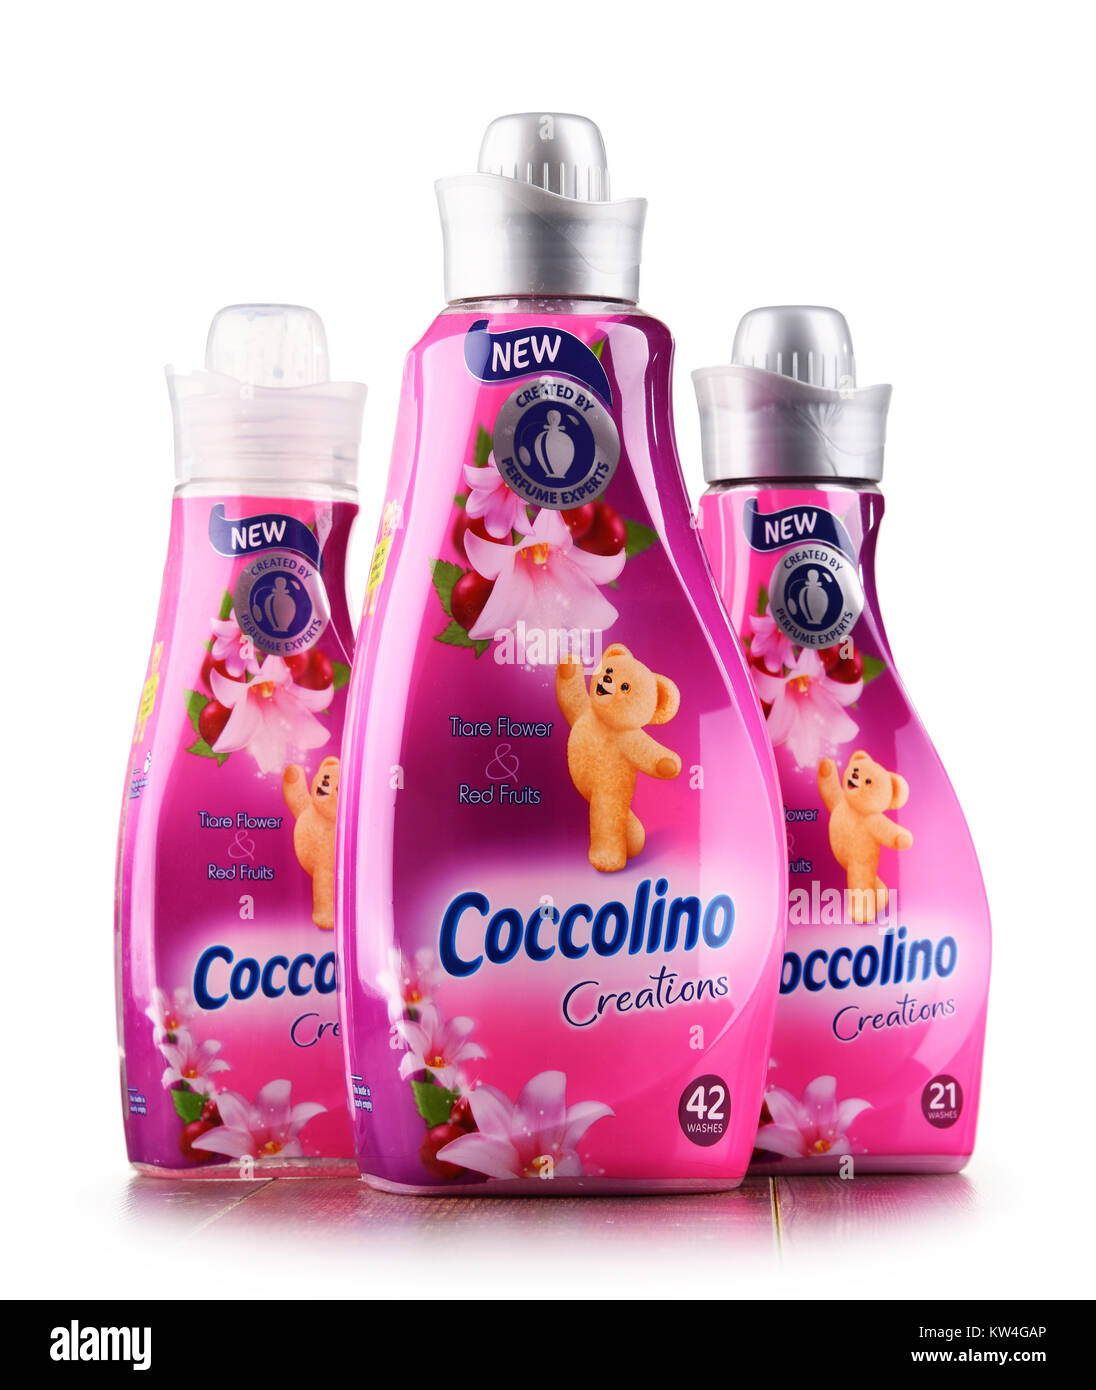 POZNAN, POLAND - DEC 14, 2017: bottles of liquid Coccolino fabric softener owned by Unilever, a British-Dutch transnational - Stock Image